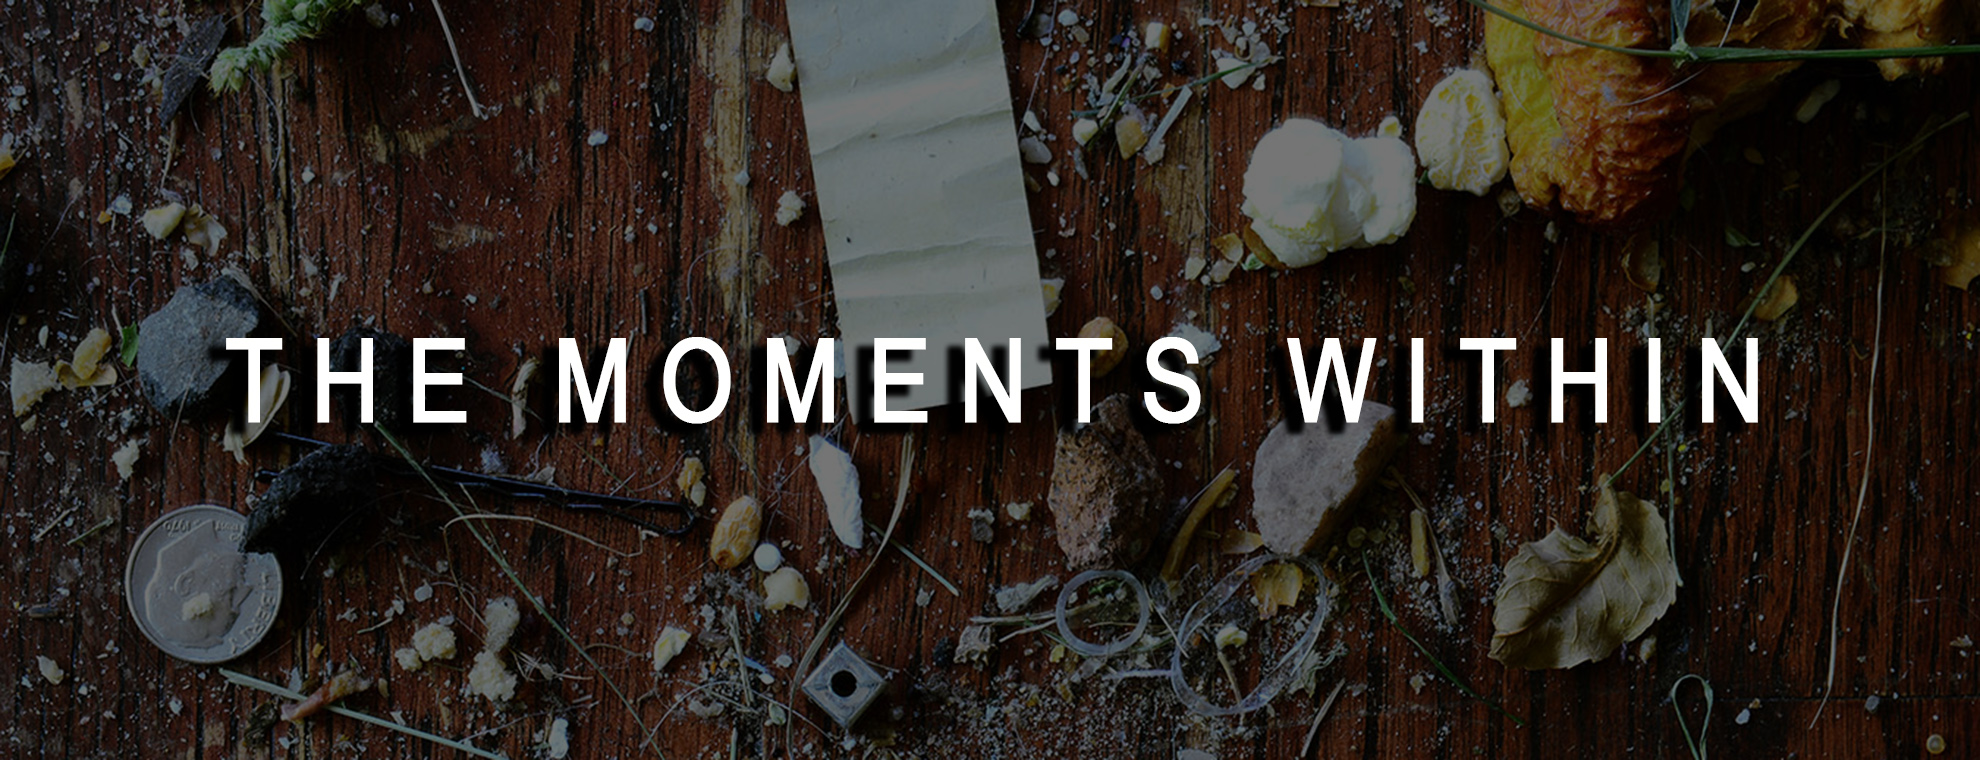 ART, The Moments Within, Chris Moss, Moss Image, text over garbage on a floor, dirty floor, conceptual art